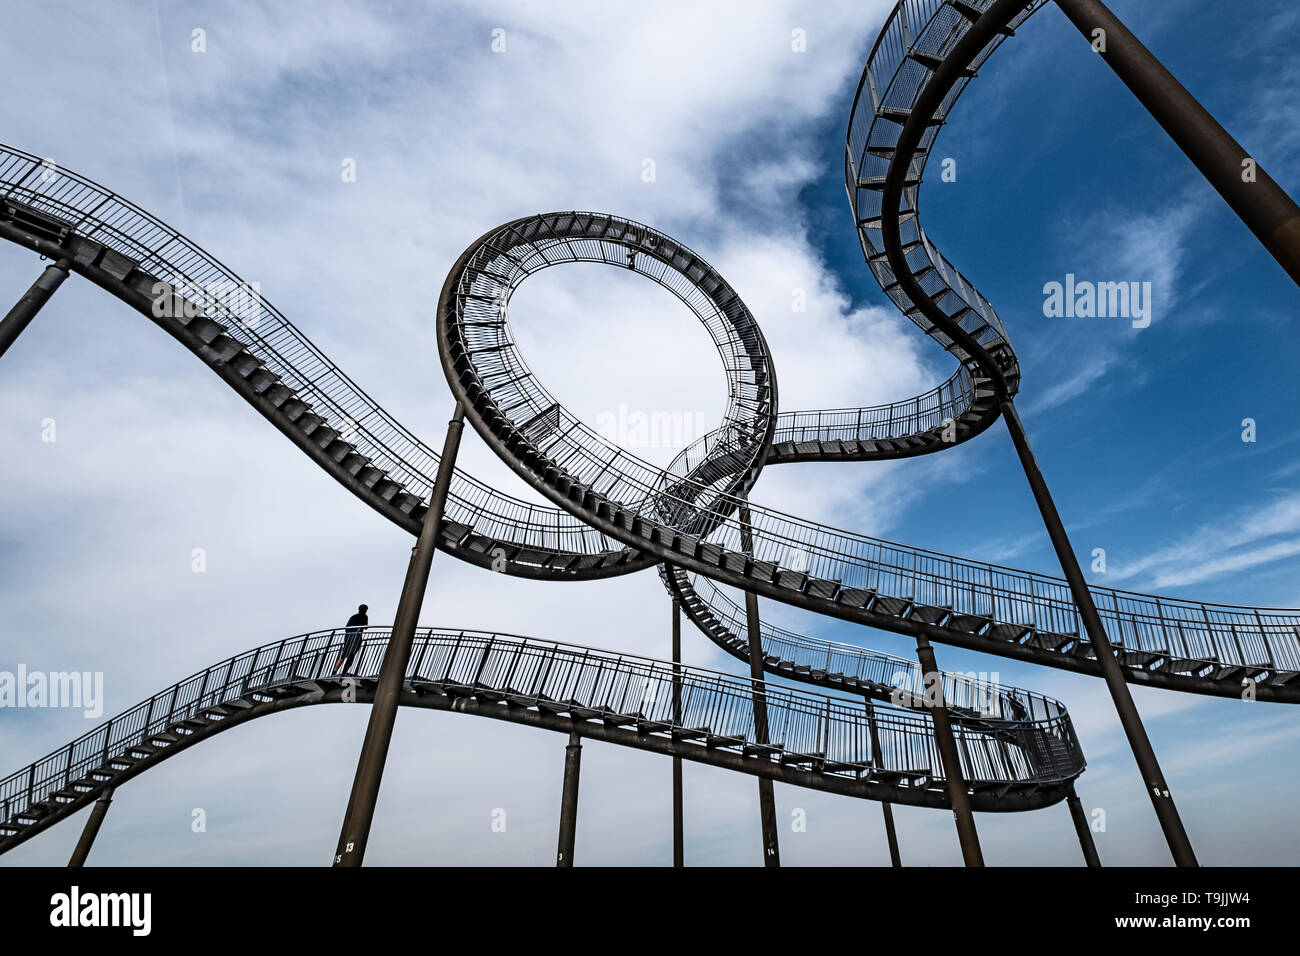 Tiger and turtle magic mountain in Duisburg Germany. Man standing on a huge steel construction in form of a rollercoaster - Stock Image